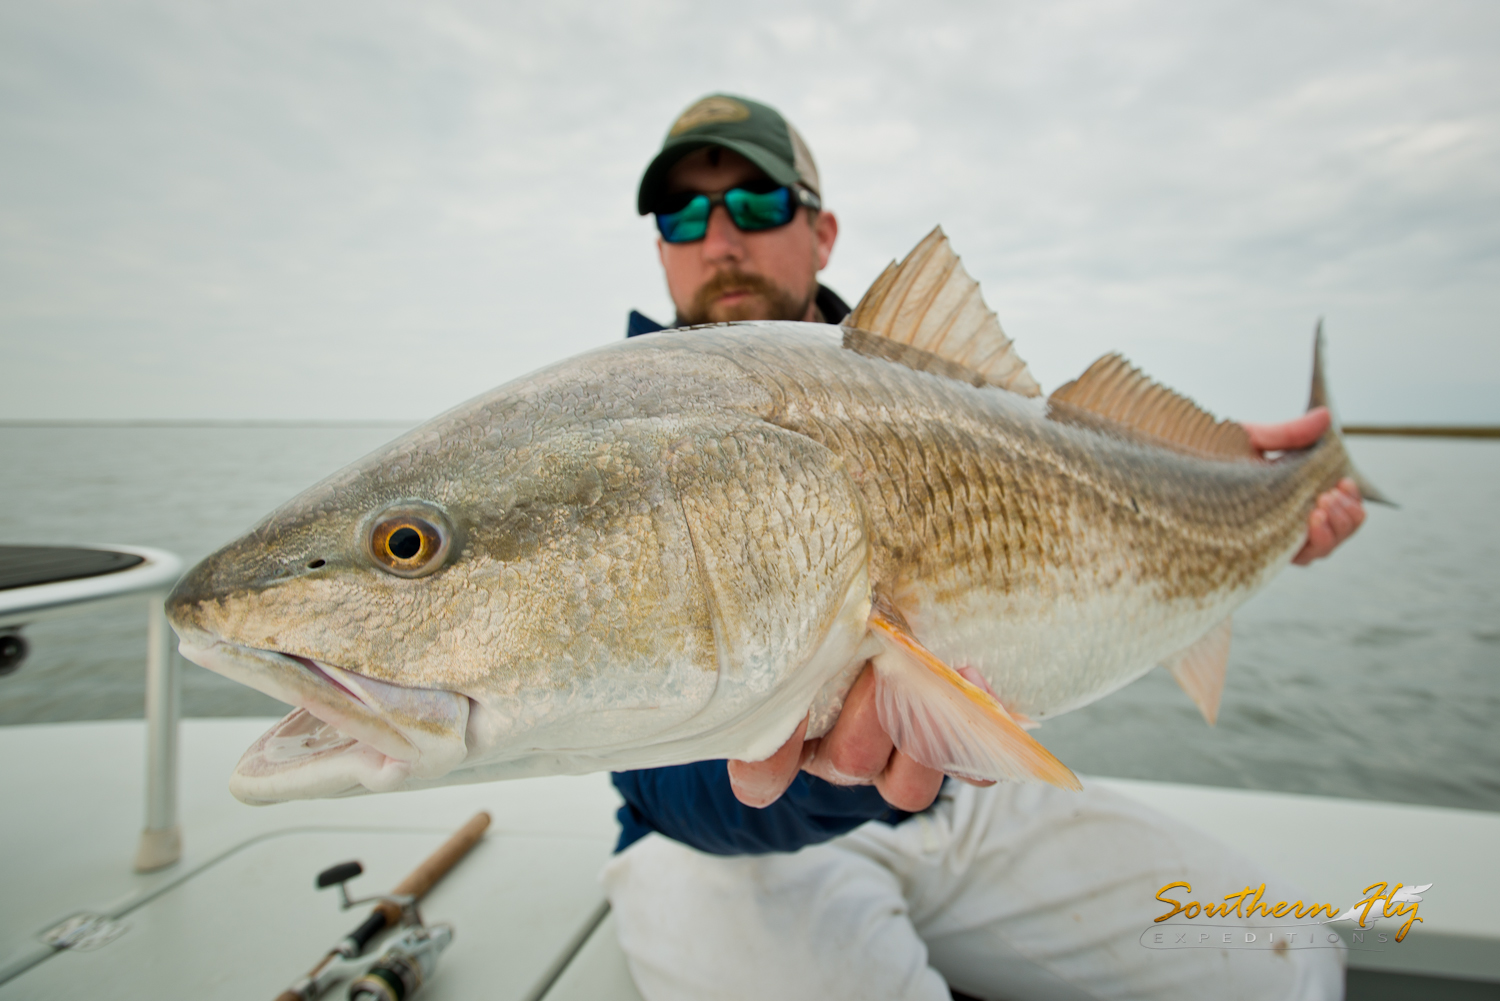 Southern Fly Expeditions - Fly fishing guide of new orleans louisiana